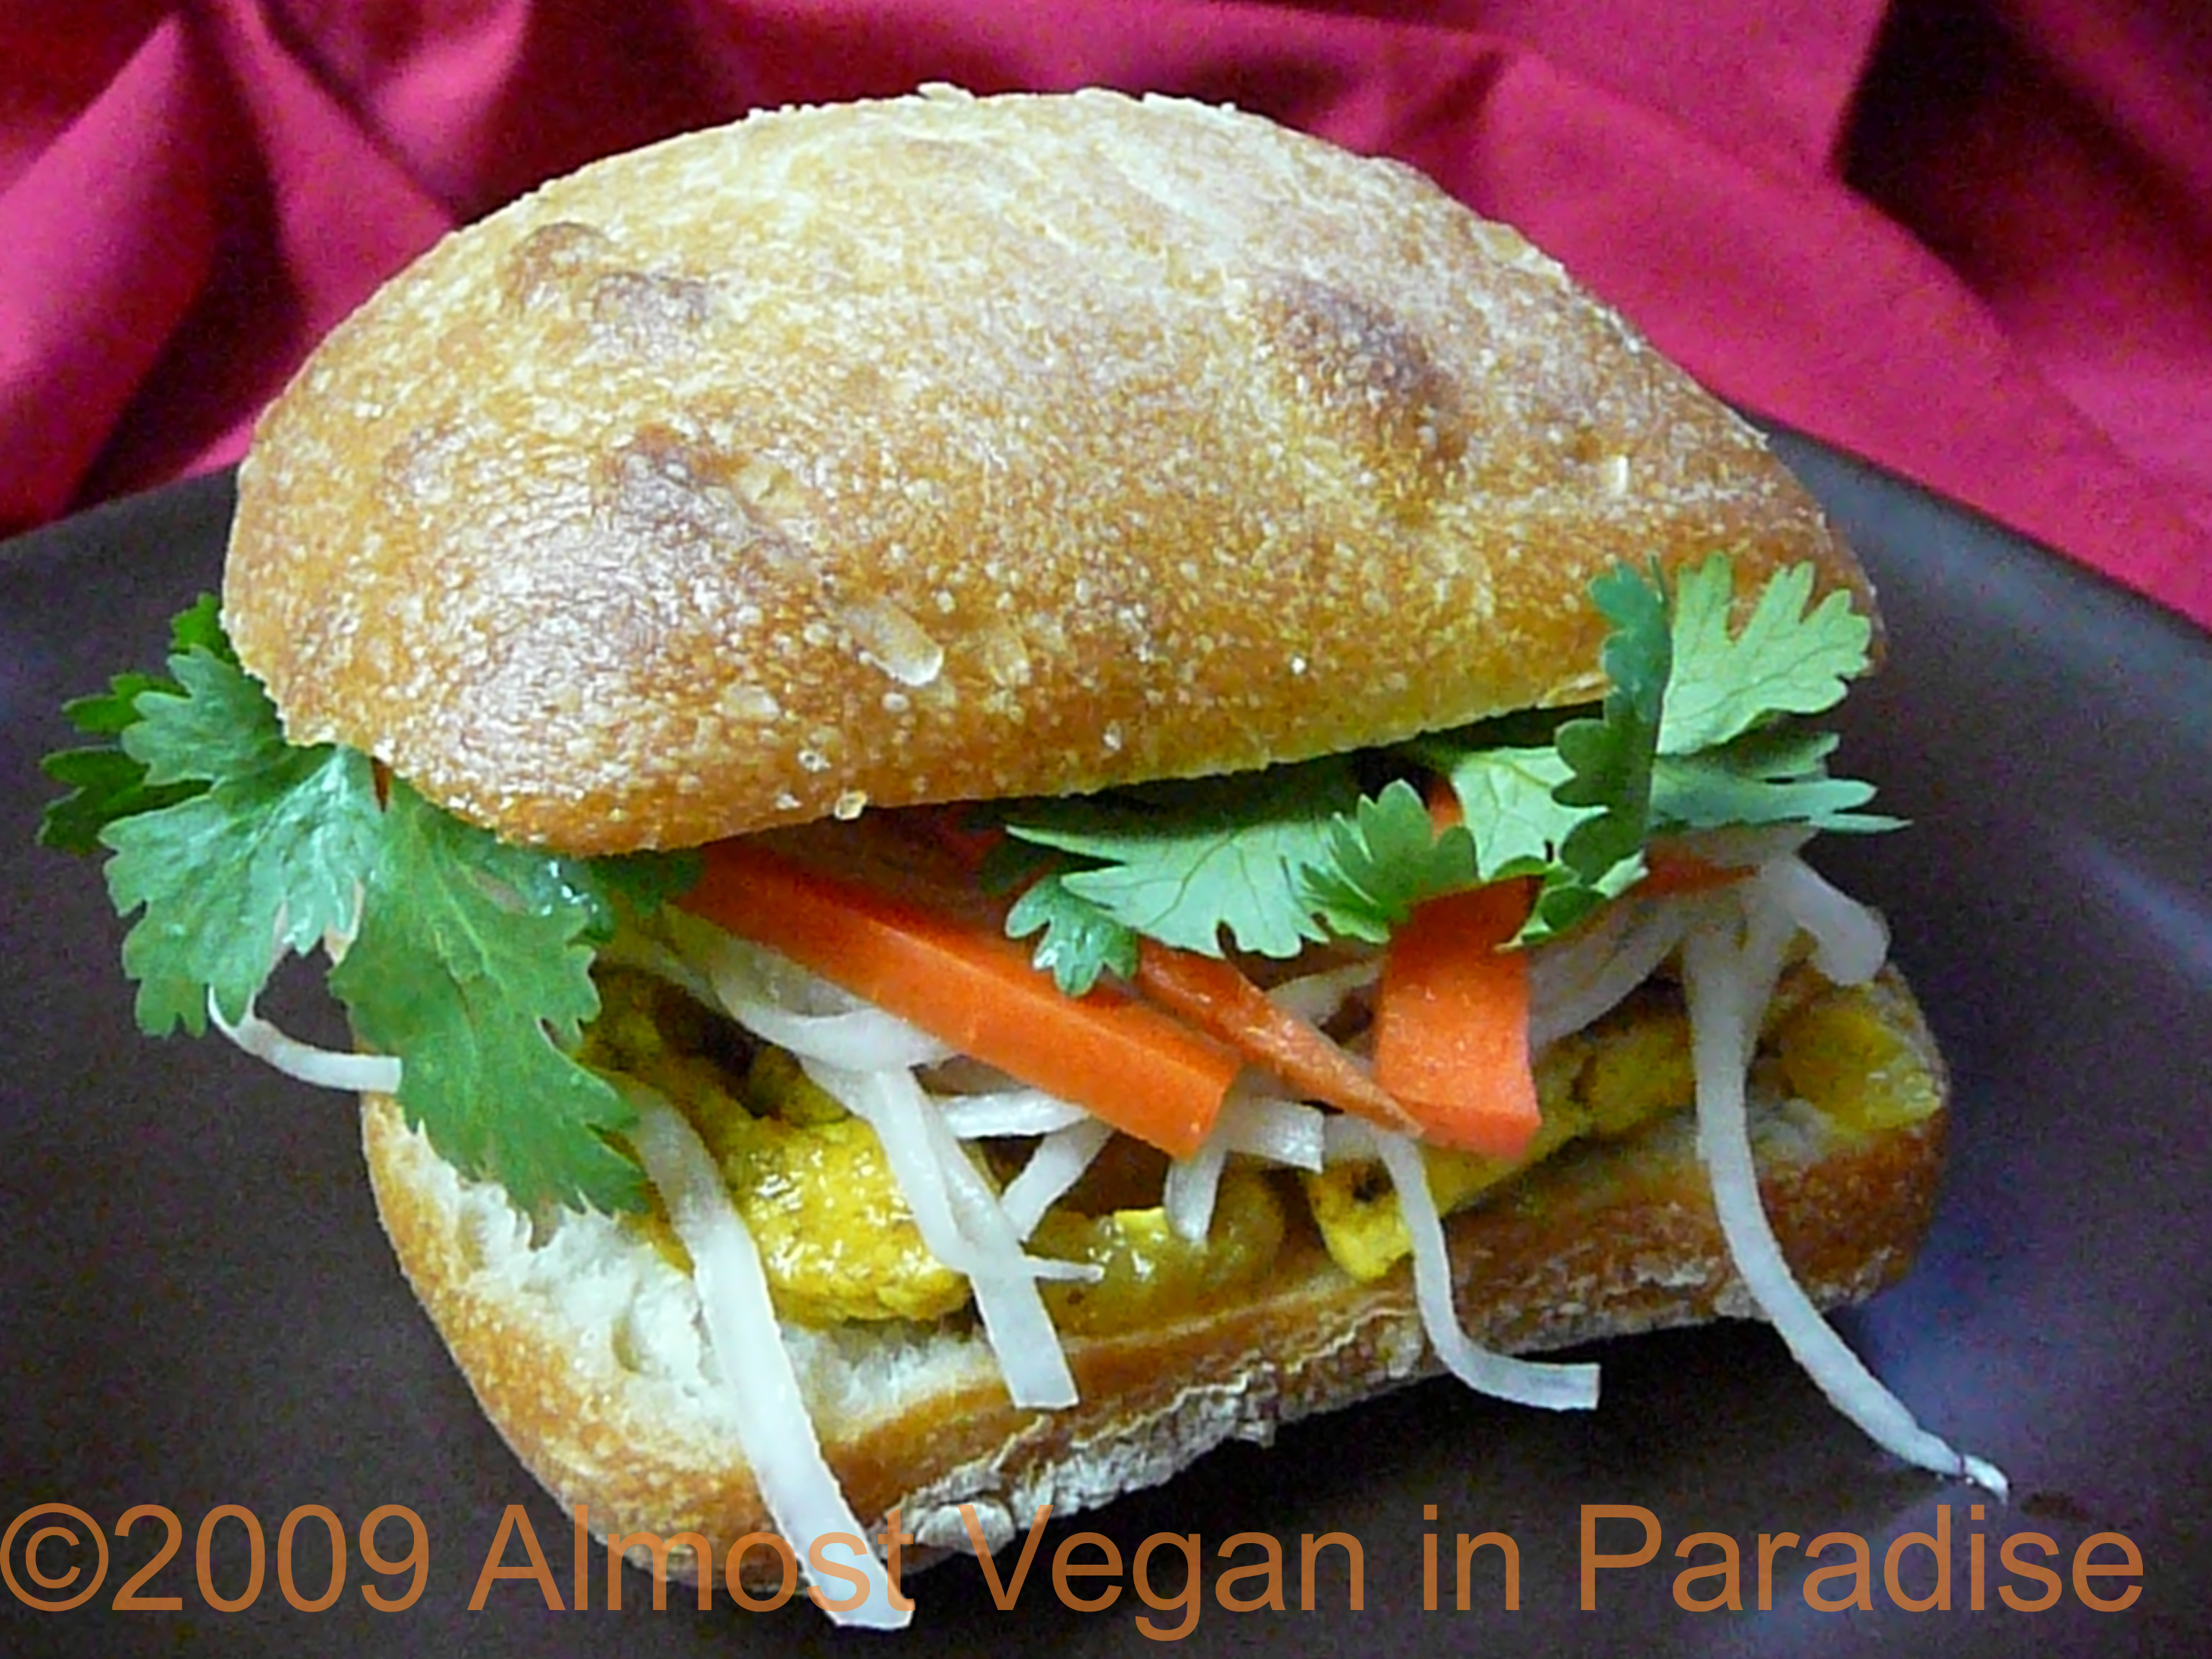 Vegan Bahn Mi, Vietnamese Sandwich, with Lemongrass Tofu and Pickled Daikon and Carrots